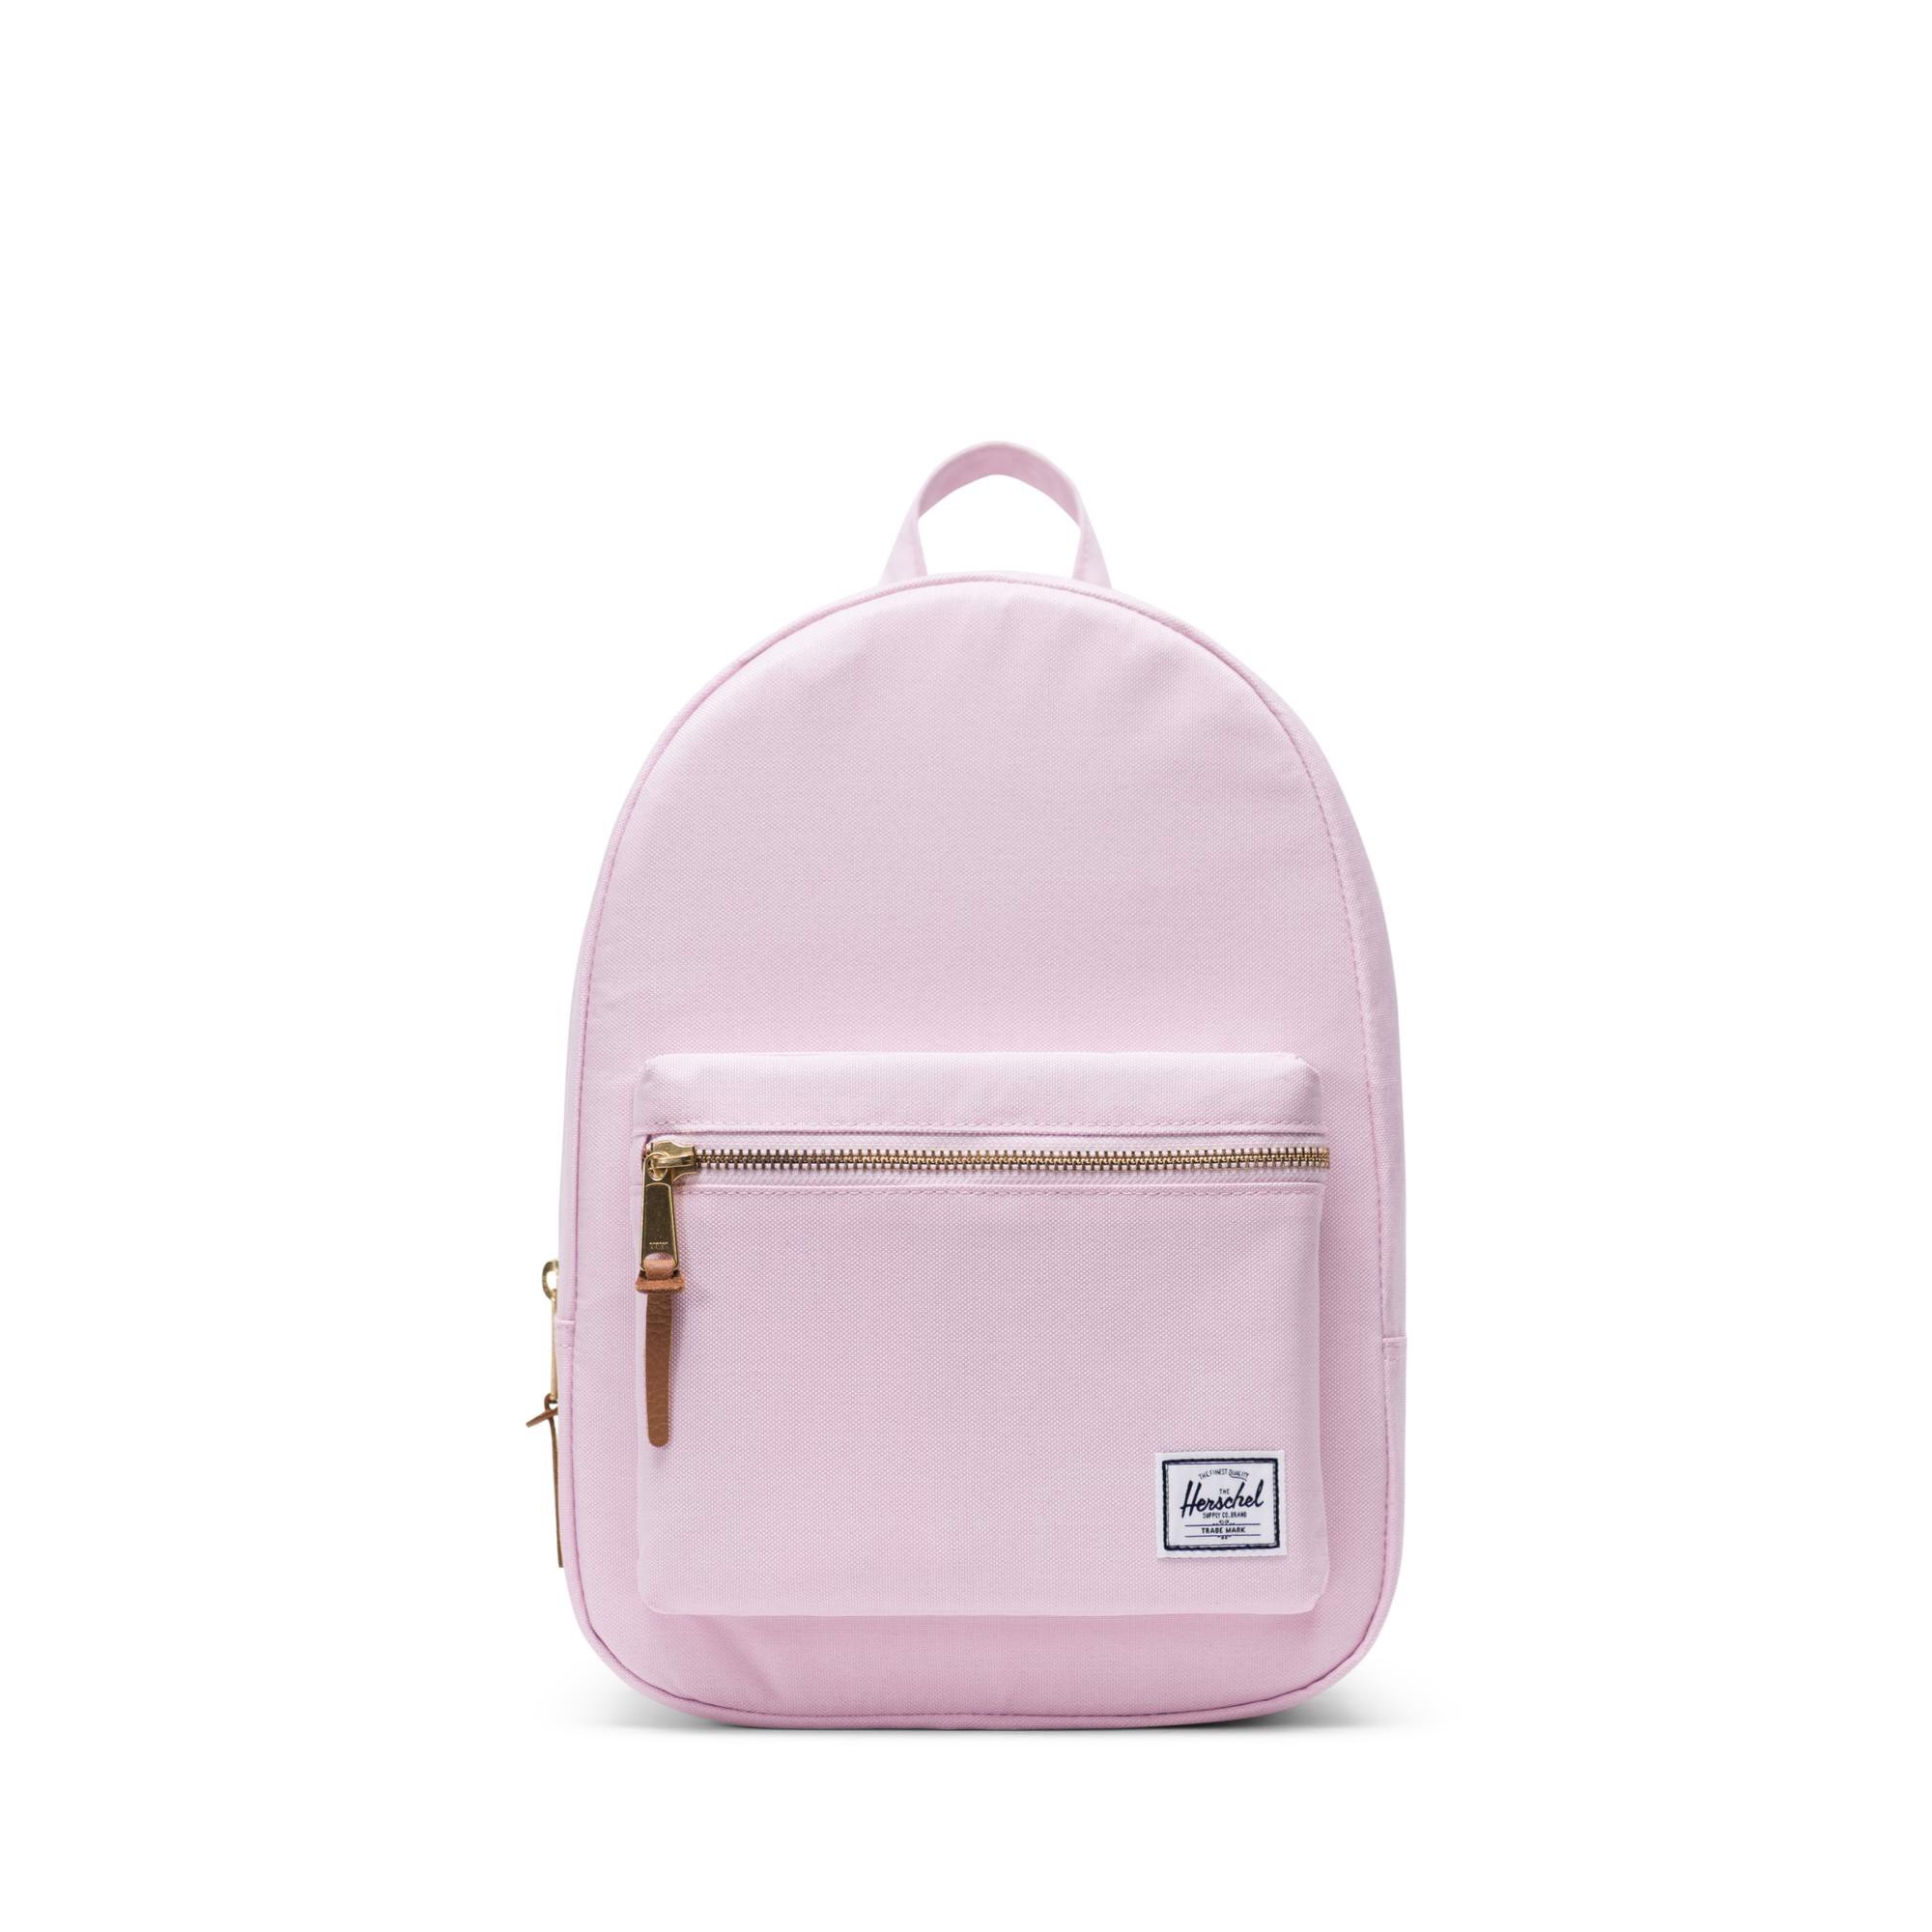 Herschel Grove Backpack | Small - Pink Lady